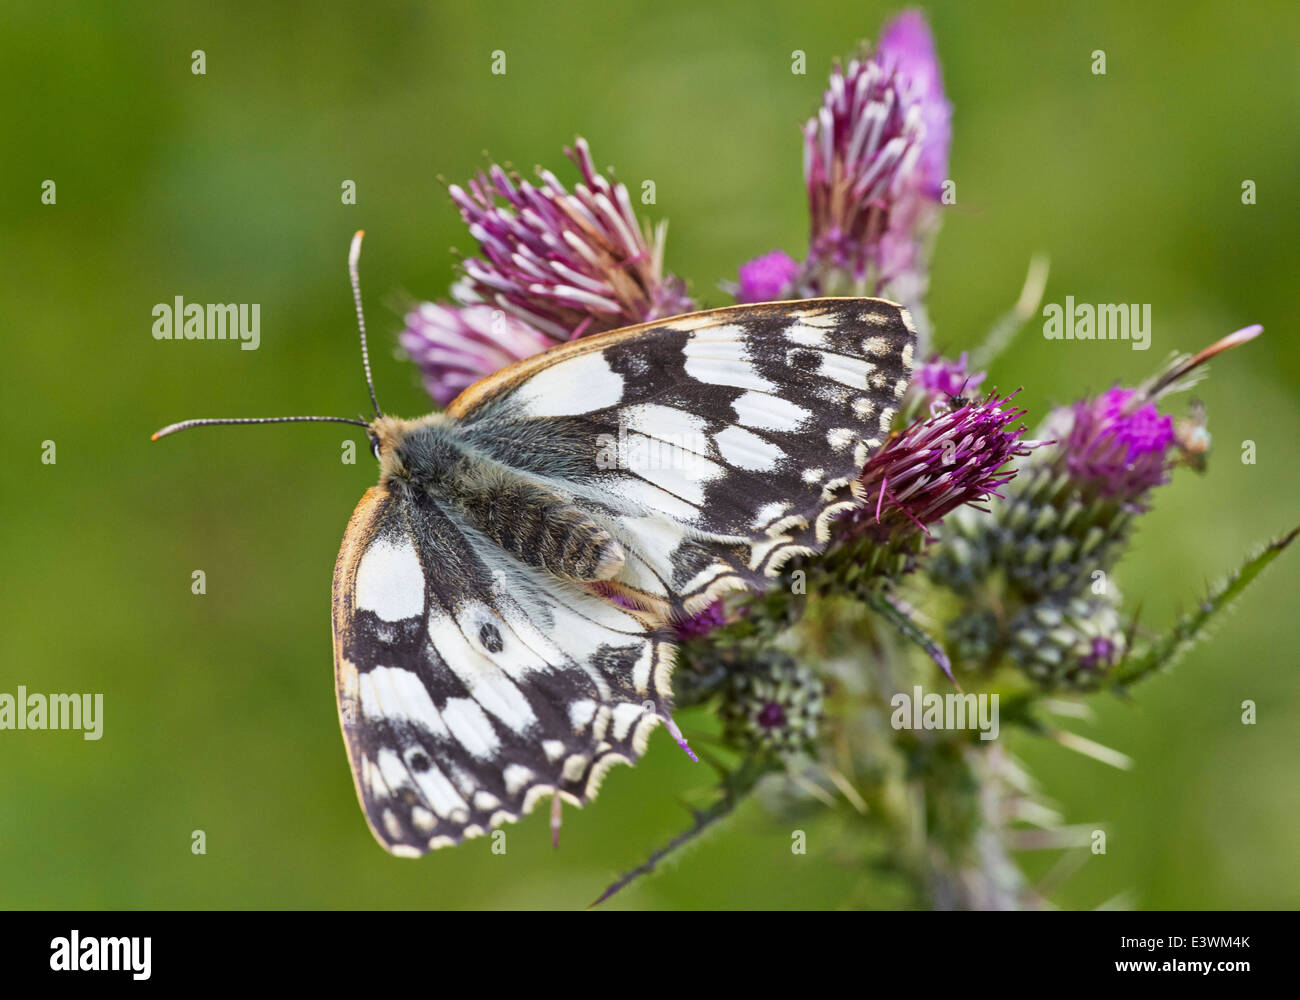 Marbled White butterfly feeding on thistle. Norbury Park, Mickleham, Surrey, England. - Stock Image